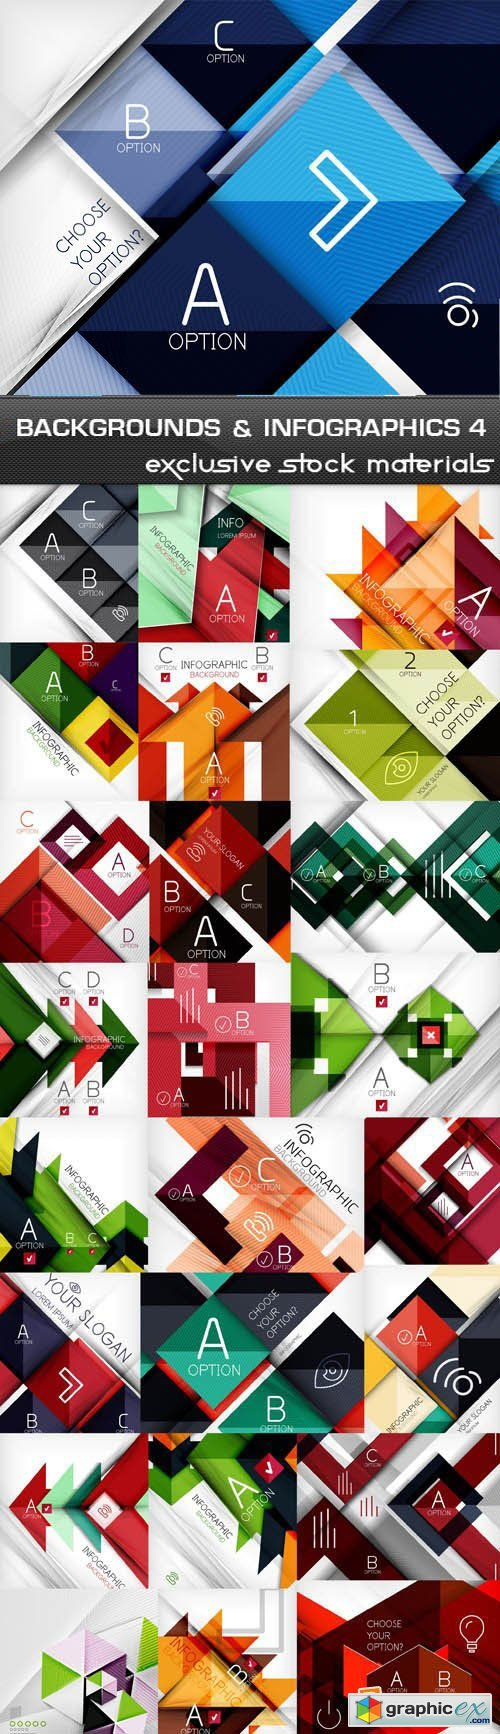 Abstract Backgrounds & Infographics Collection 4, 25xEPS